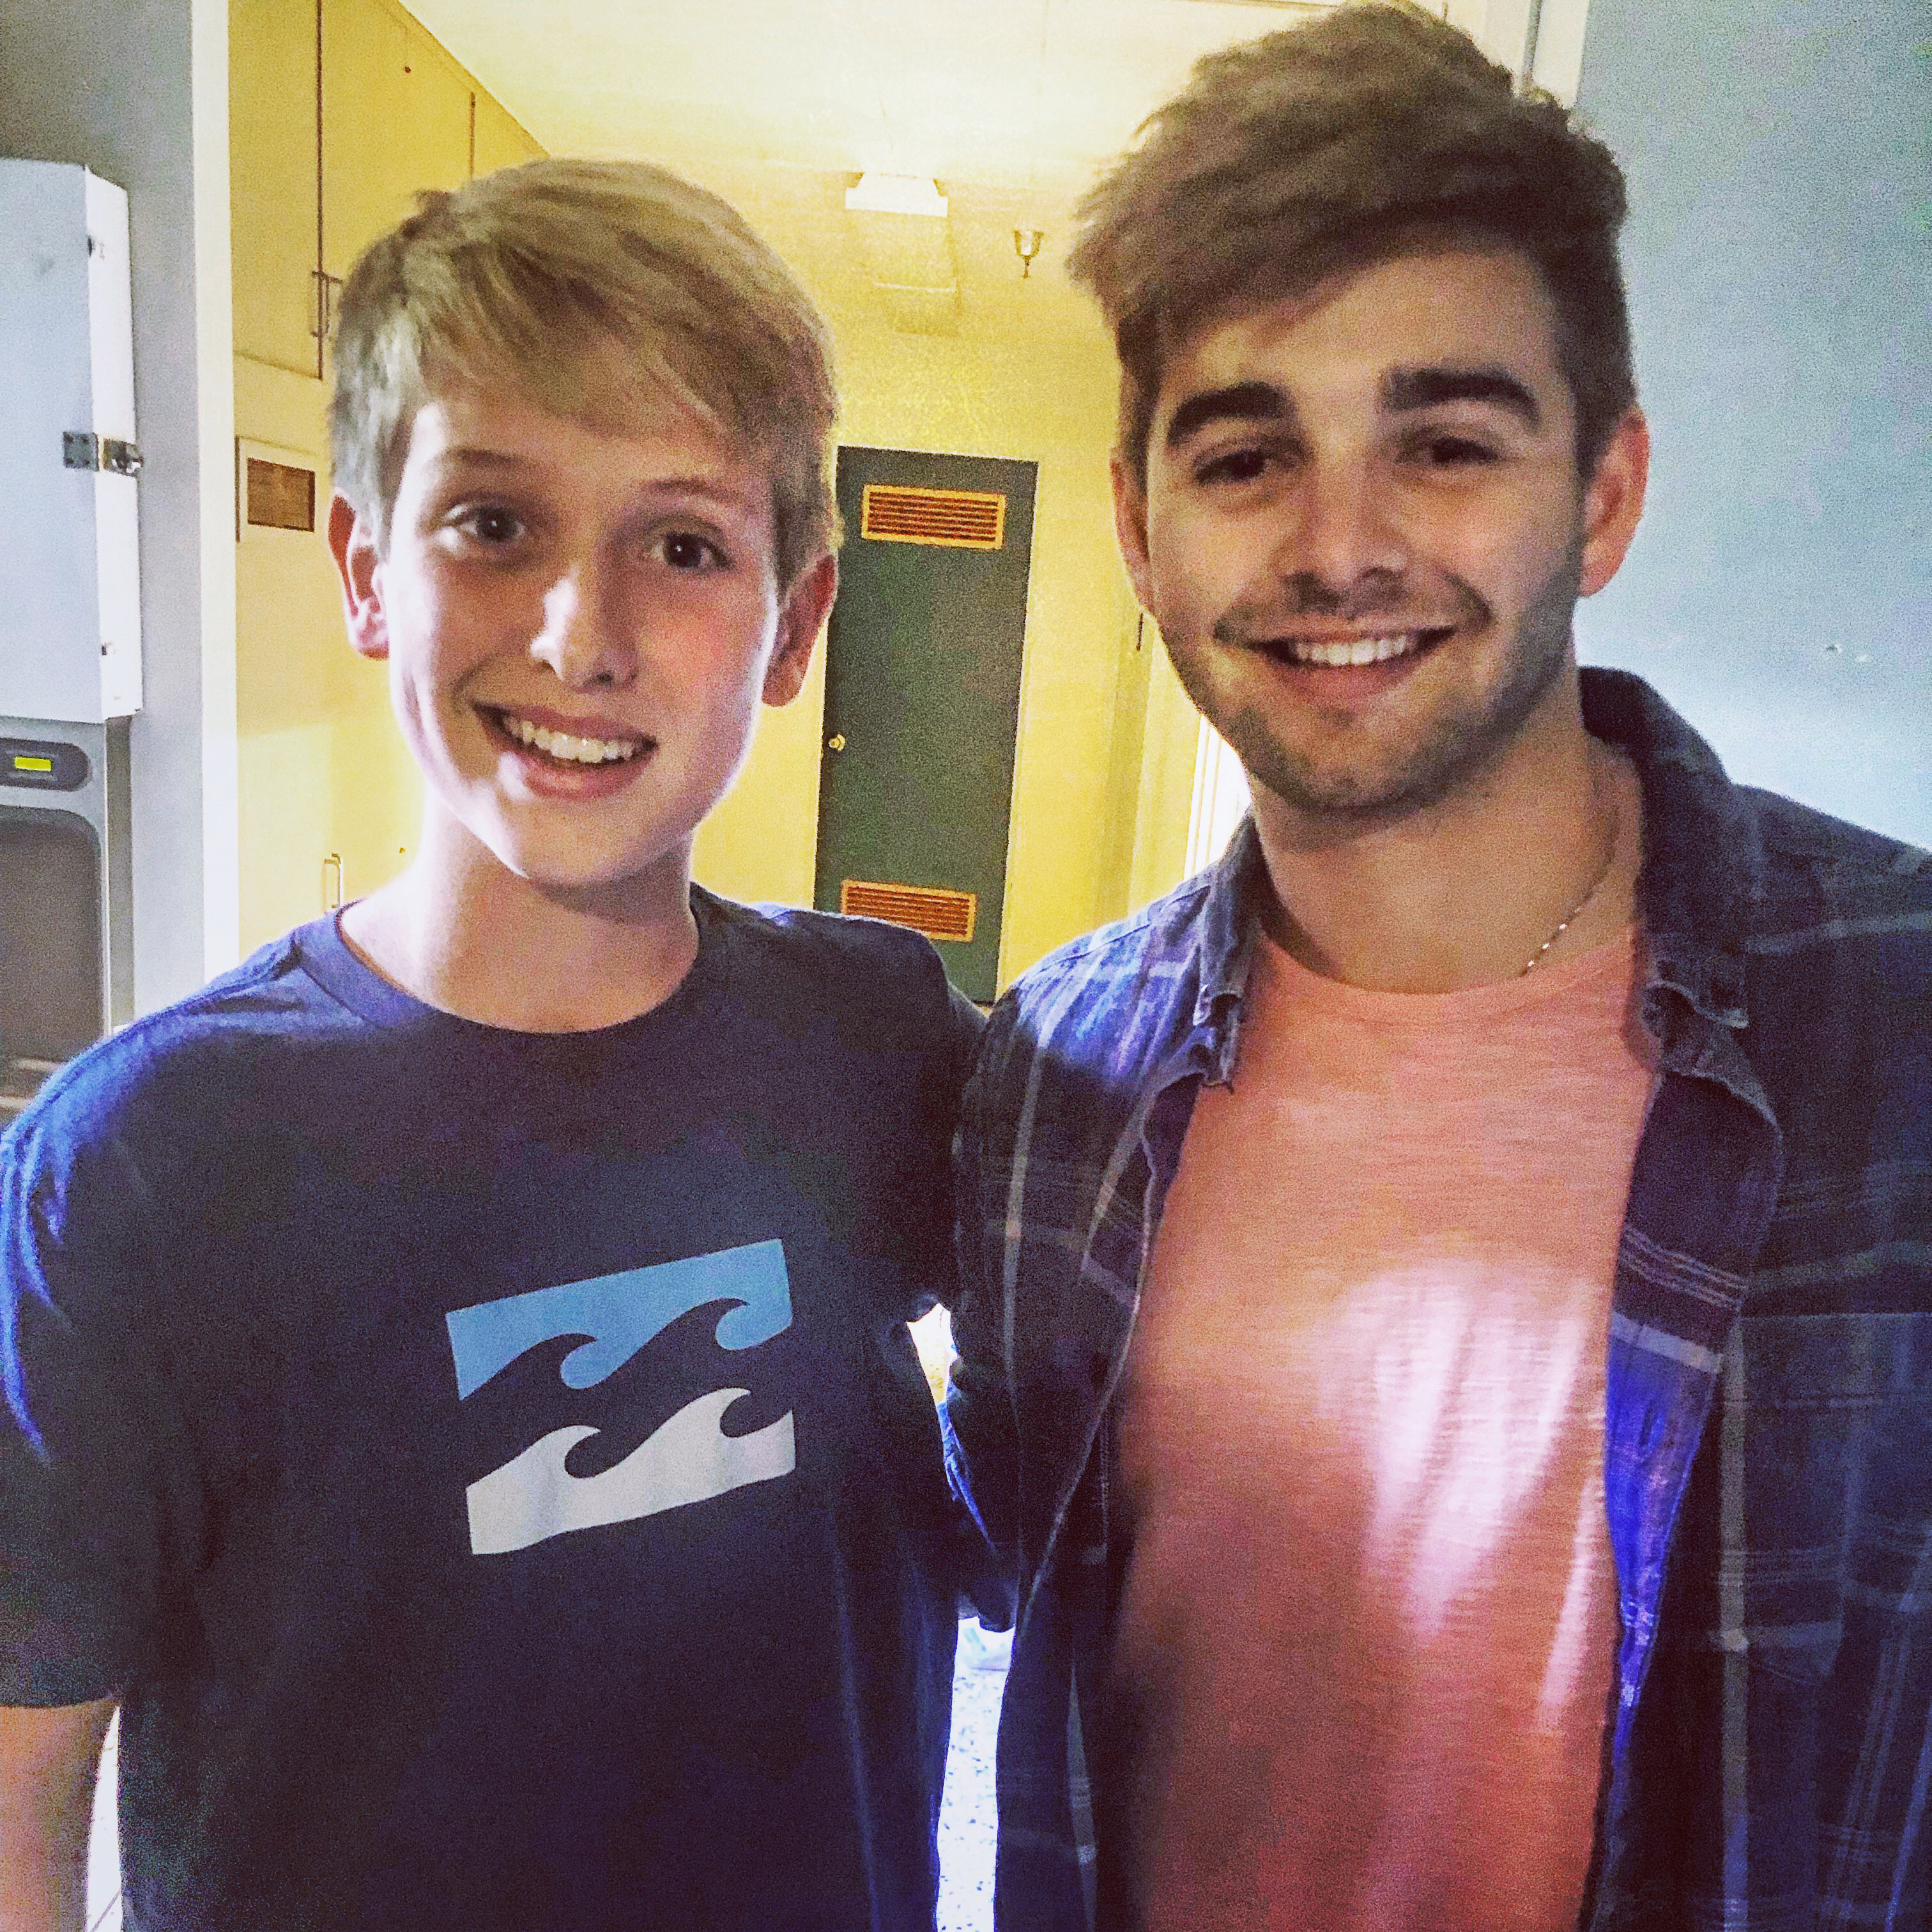 Behind the scenes with Jake Satow and Jack Griffo on the set of Snoozefest.